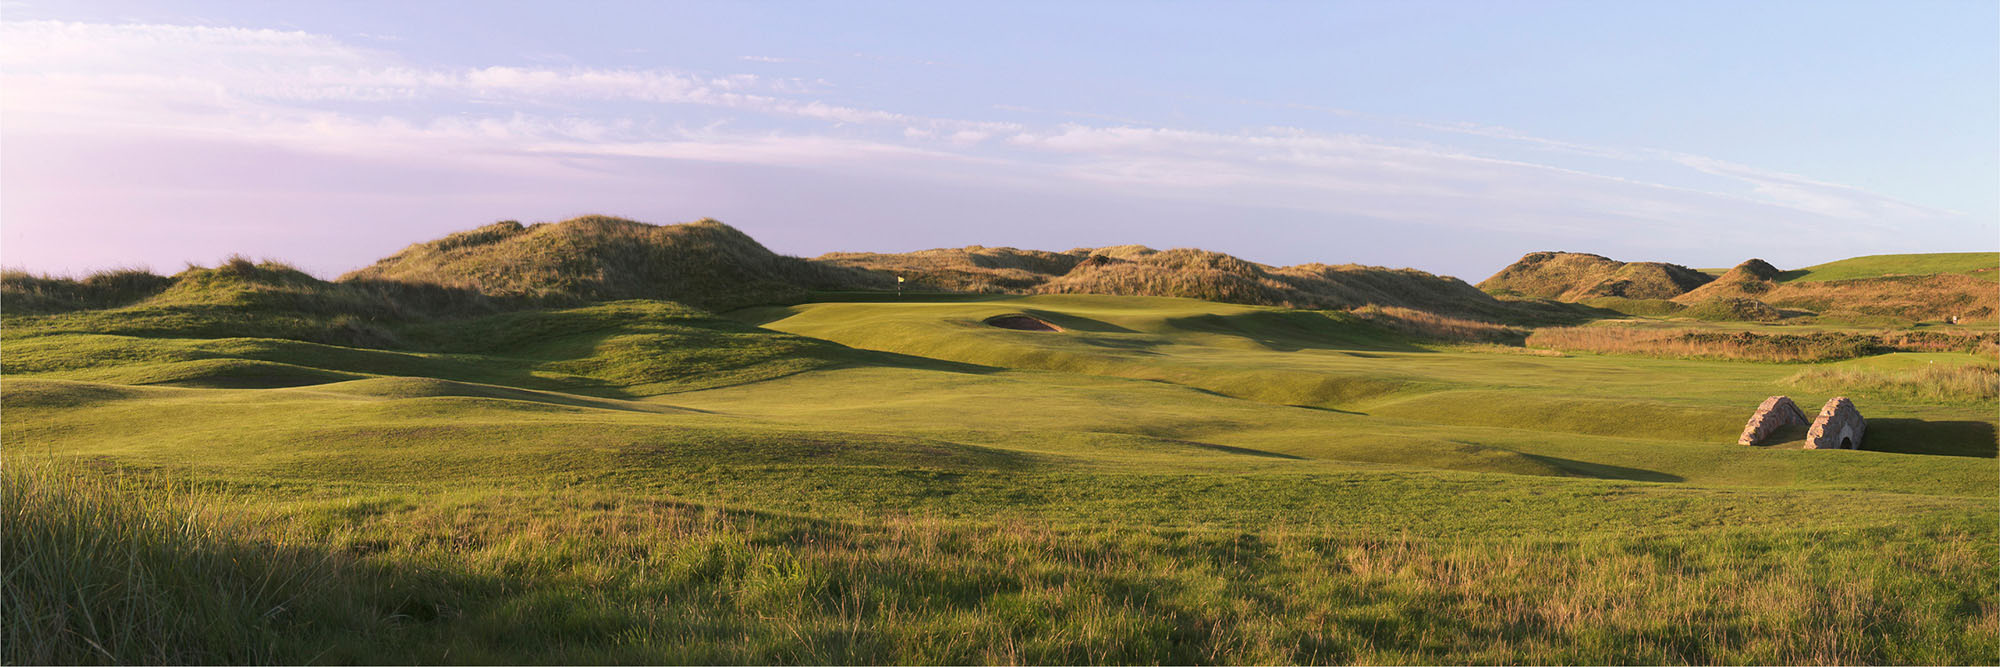 Golf Course Image - Cruden Bay No. 6